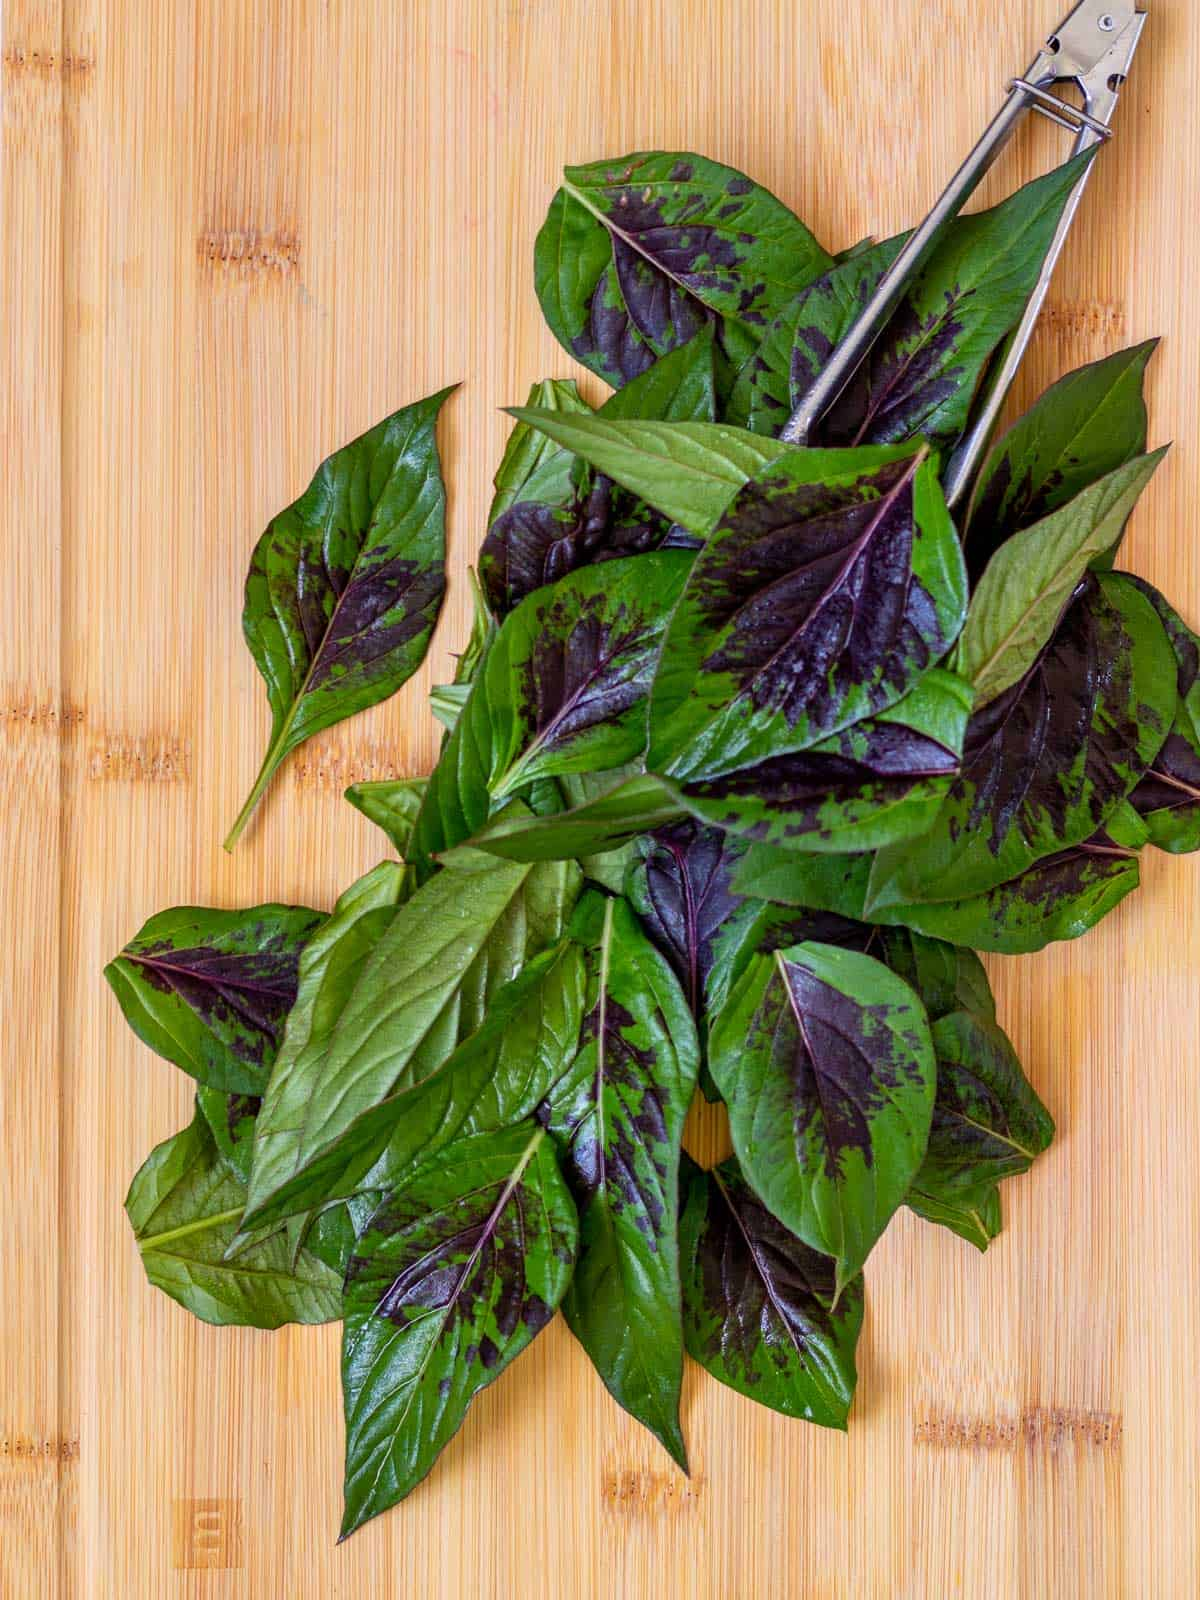 Lagos spinach leaves cook quickly.